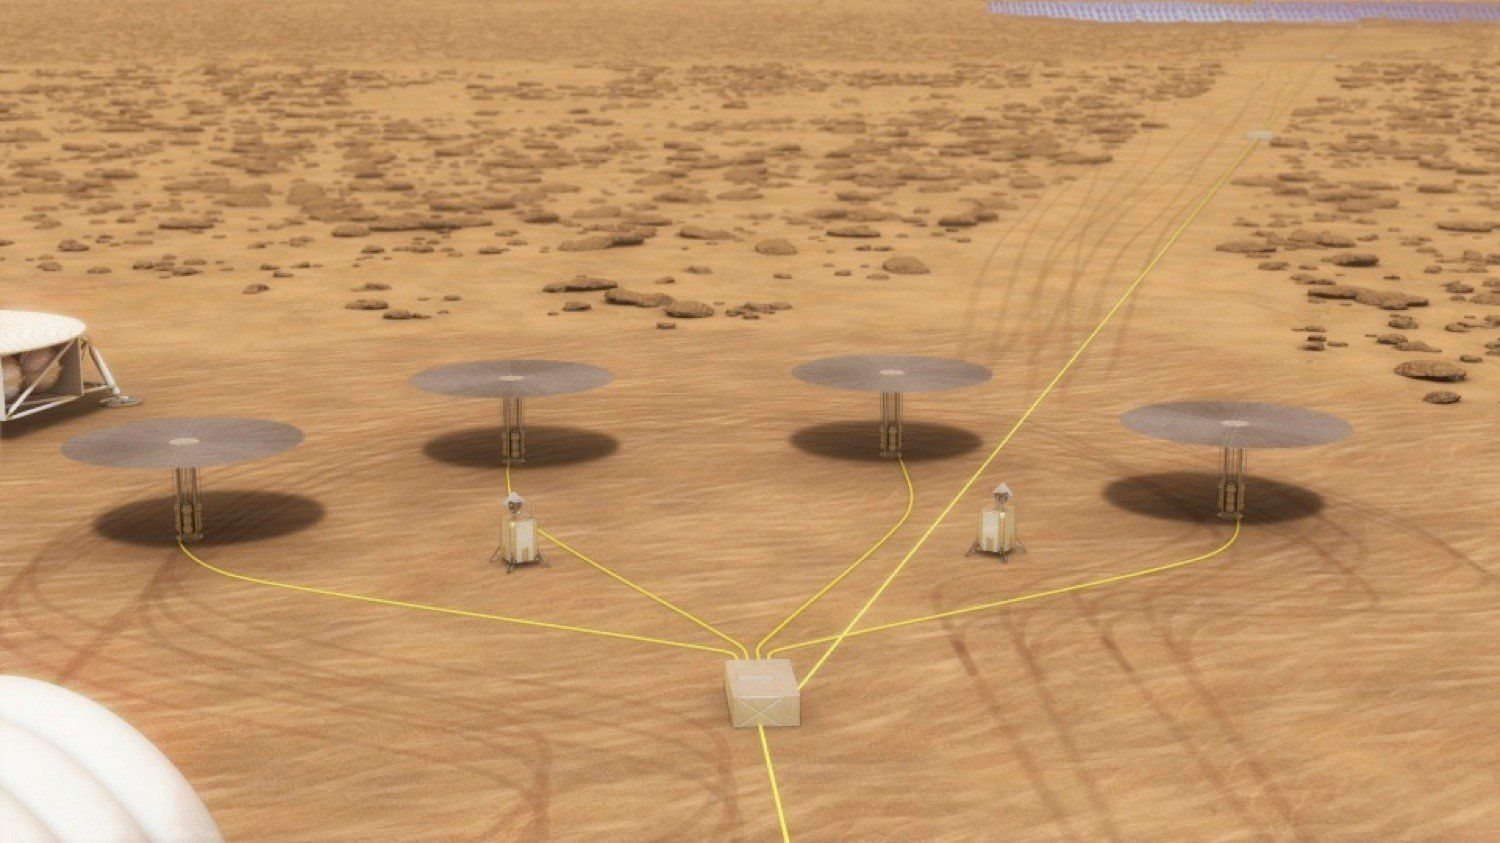 NASA Is Testing a Compact Nuclear Reactor to Power Astronauts on Mars